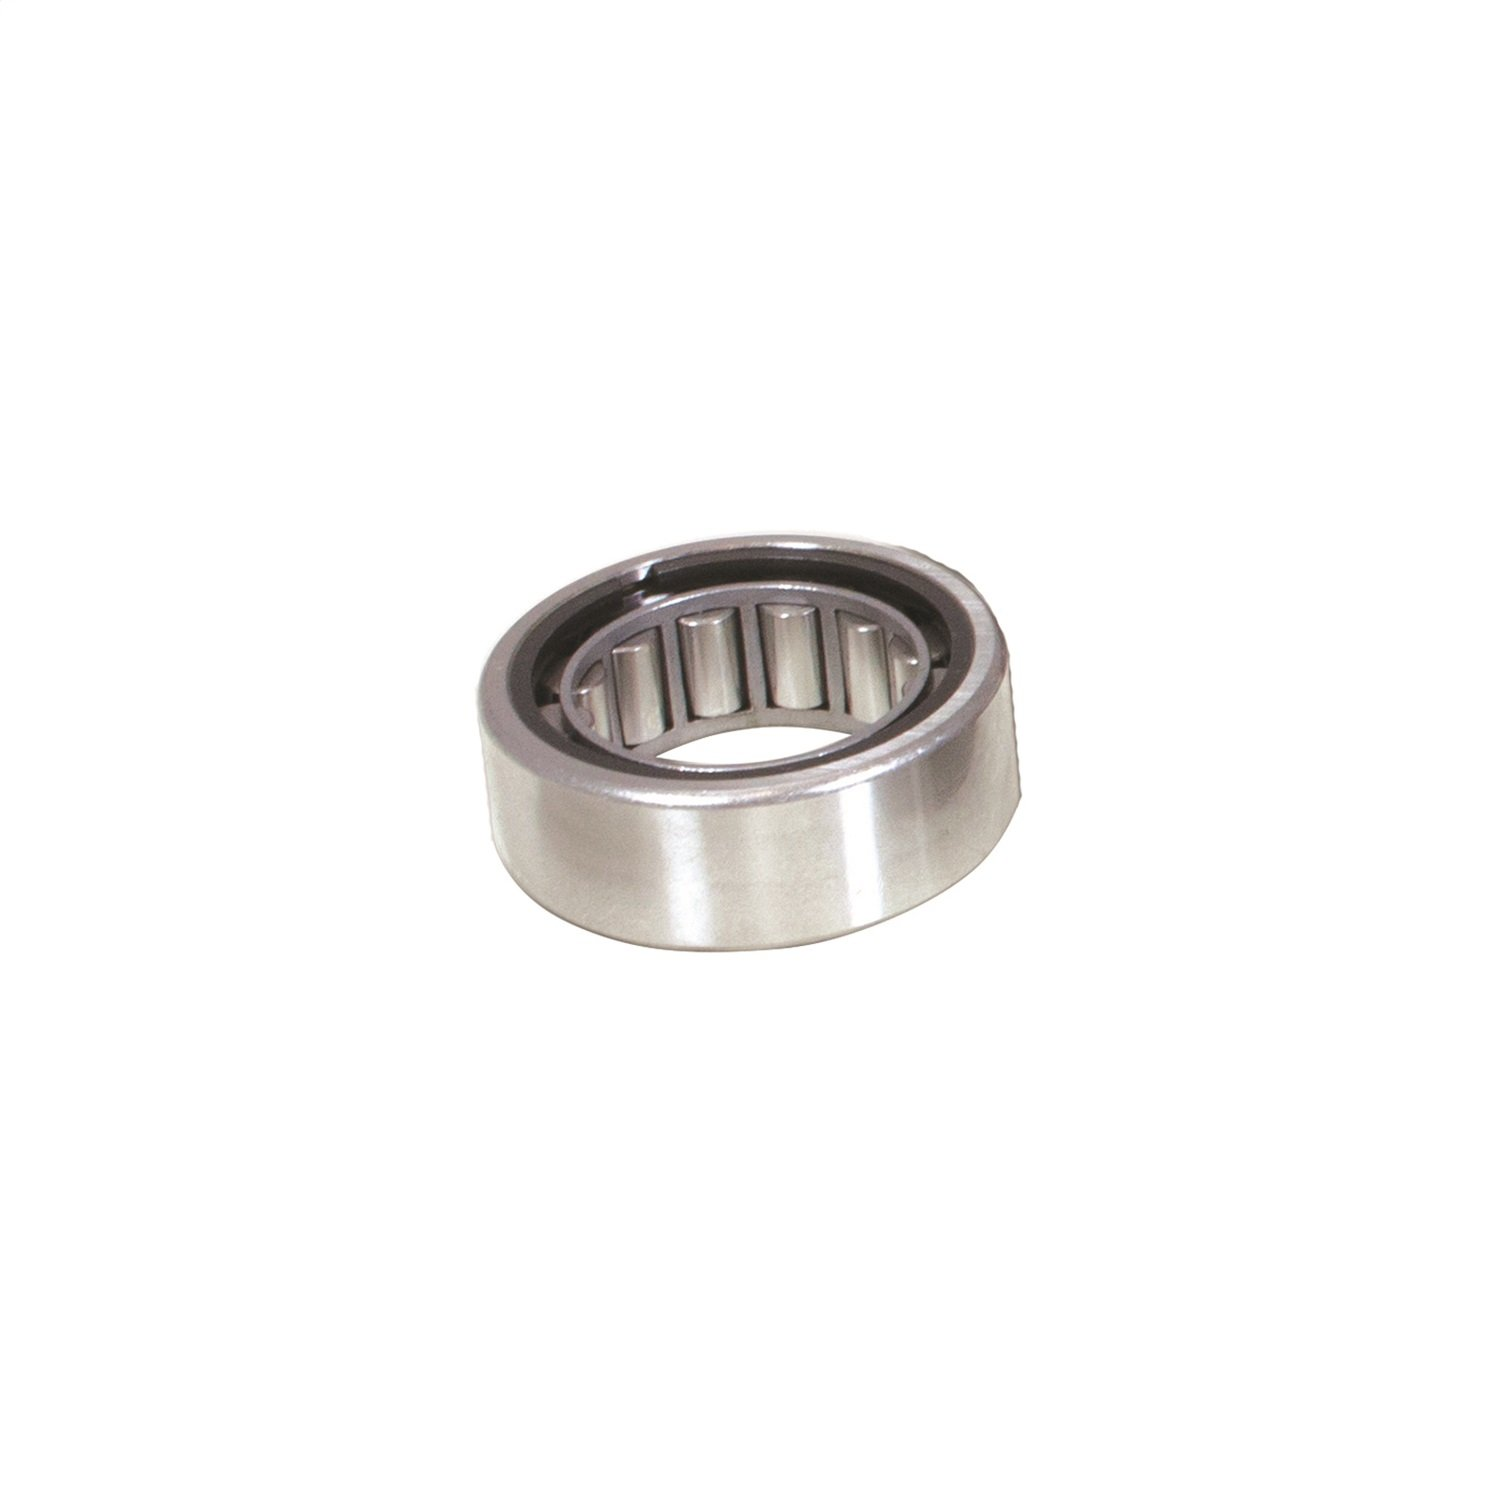 Yukon (YB PB-004) 2.050' O.D. Pilot Bearing for GM 14-Bolt Truck 10.5' Differential Yukon Gear